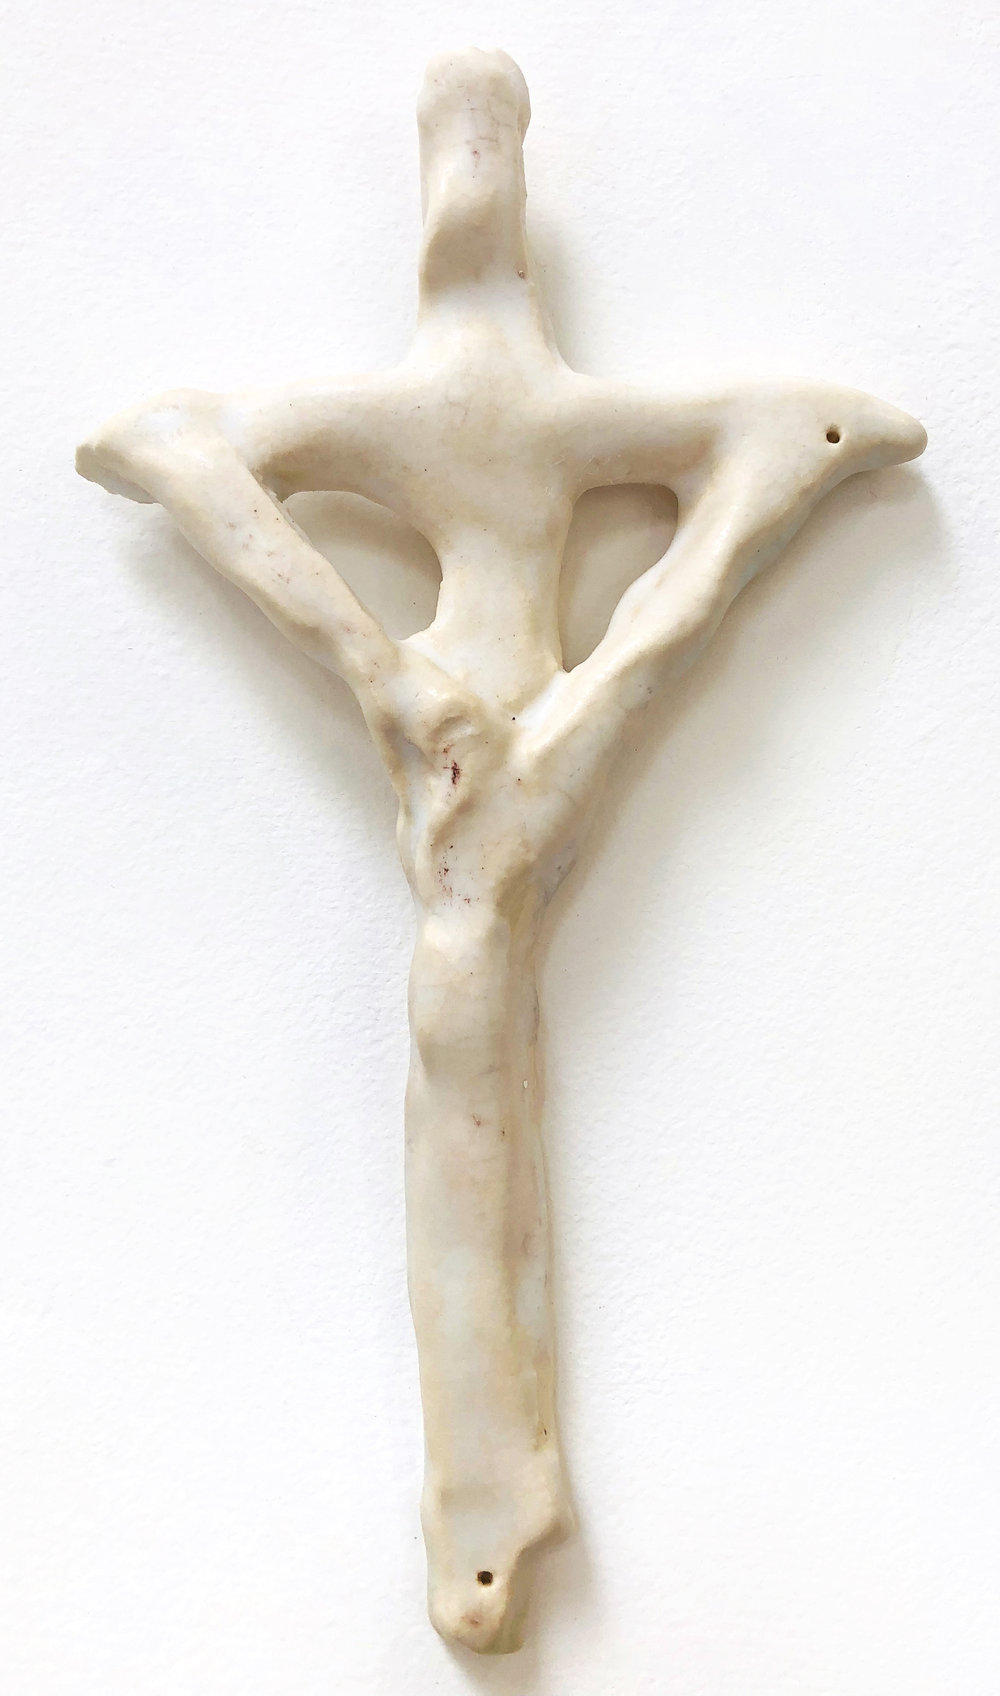 20-220x130-$1150-RichardLewer-Crucifix.jpg